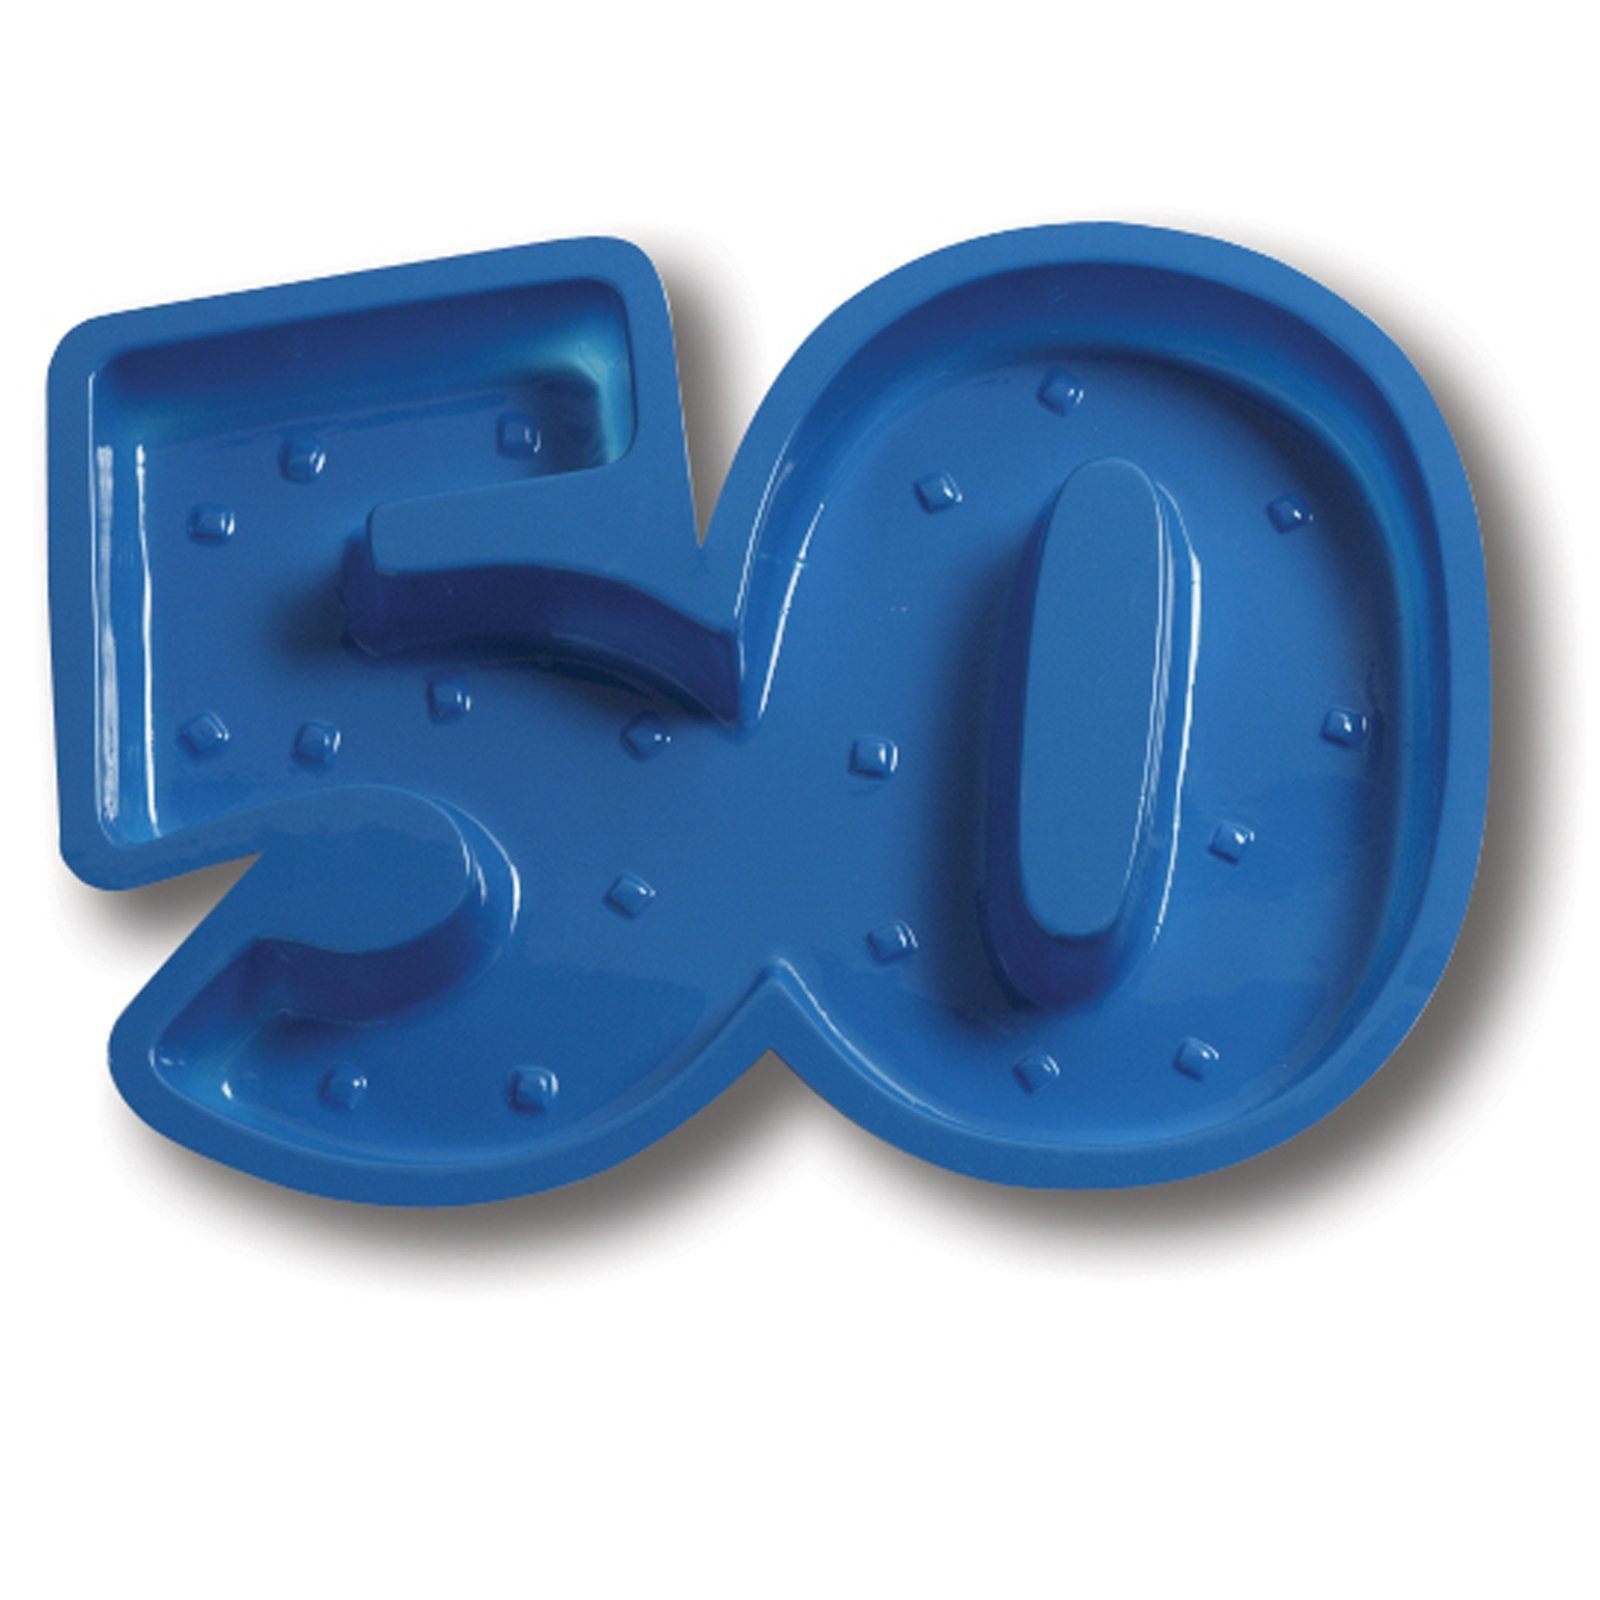 50th Plastic Tray by Creative Converting (Image #1)